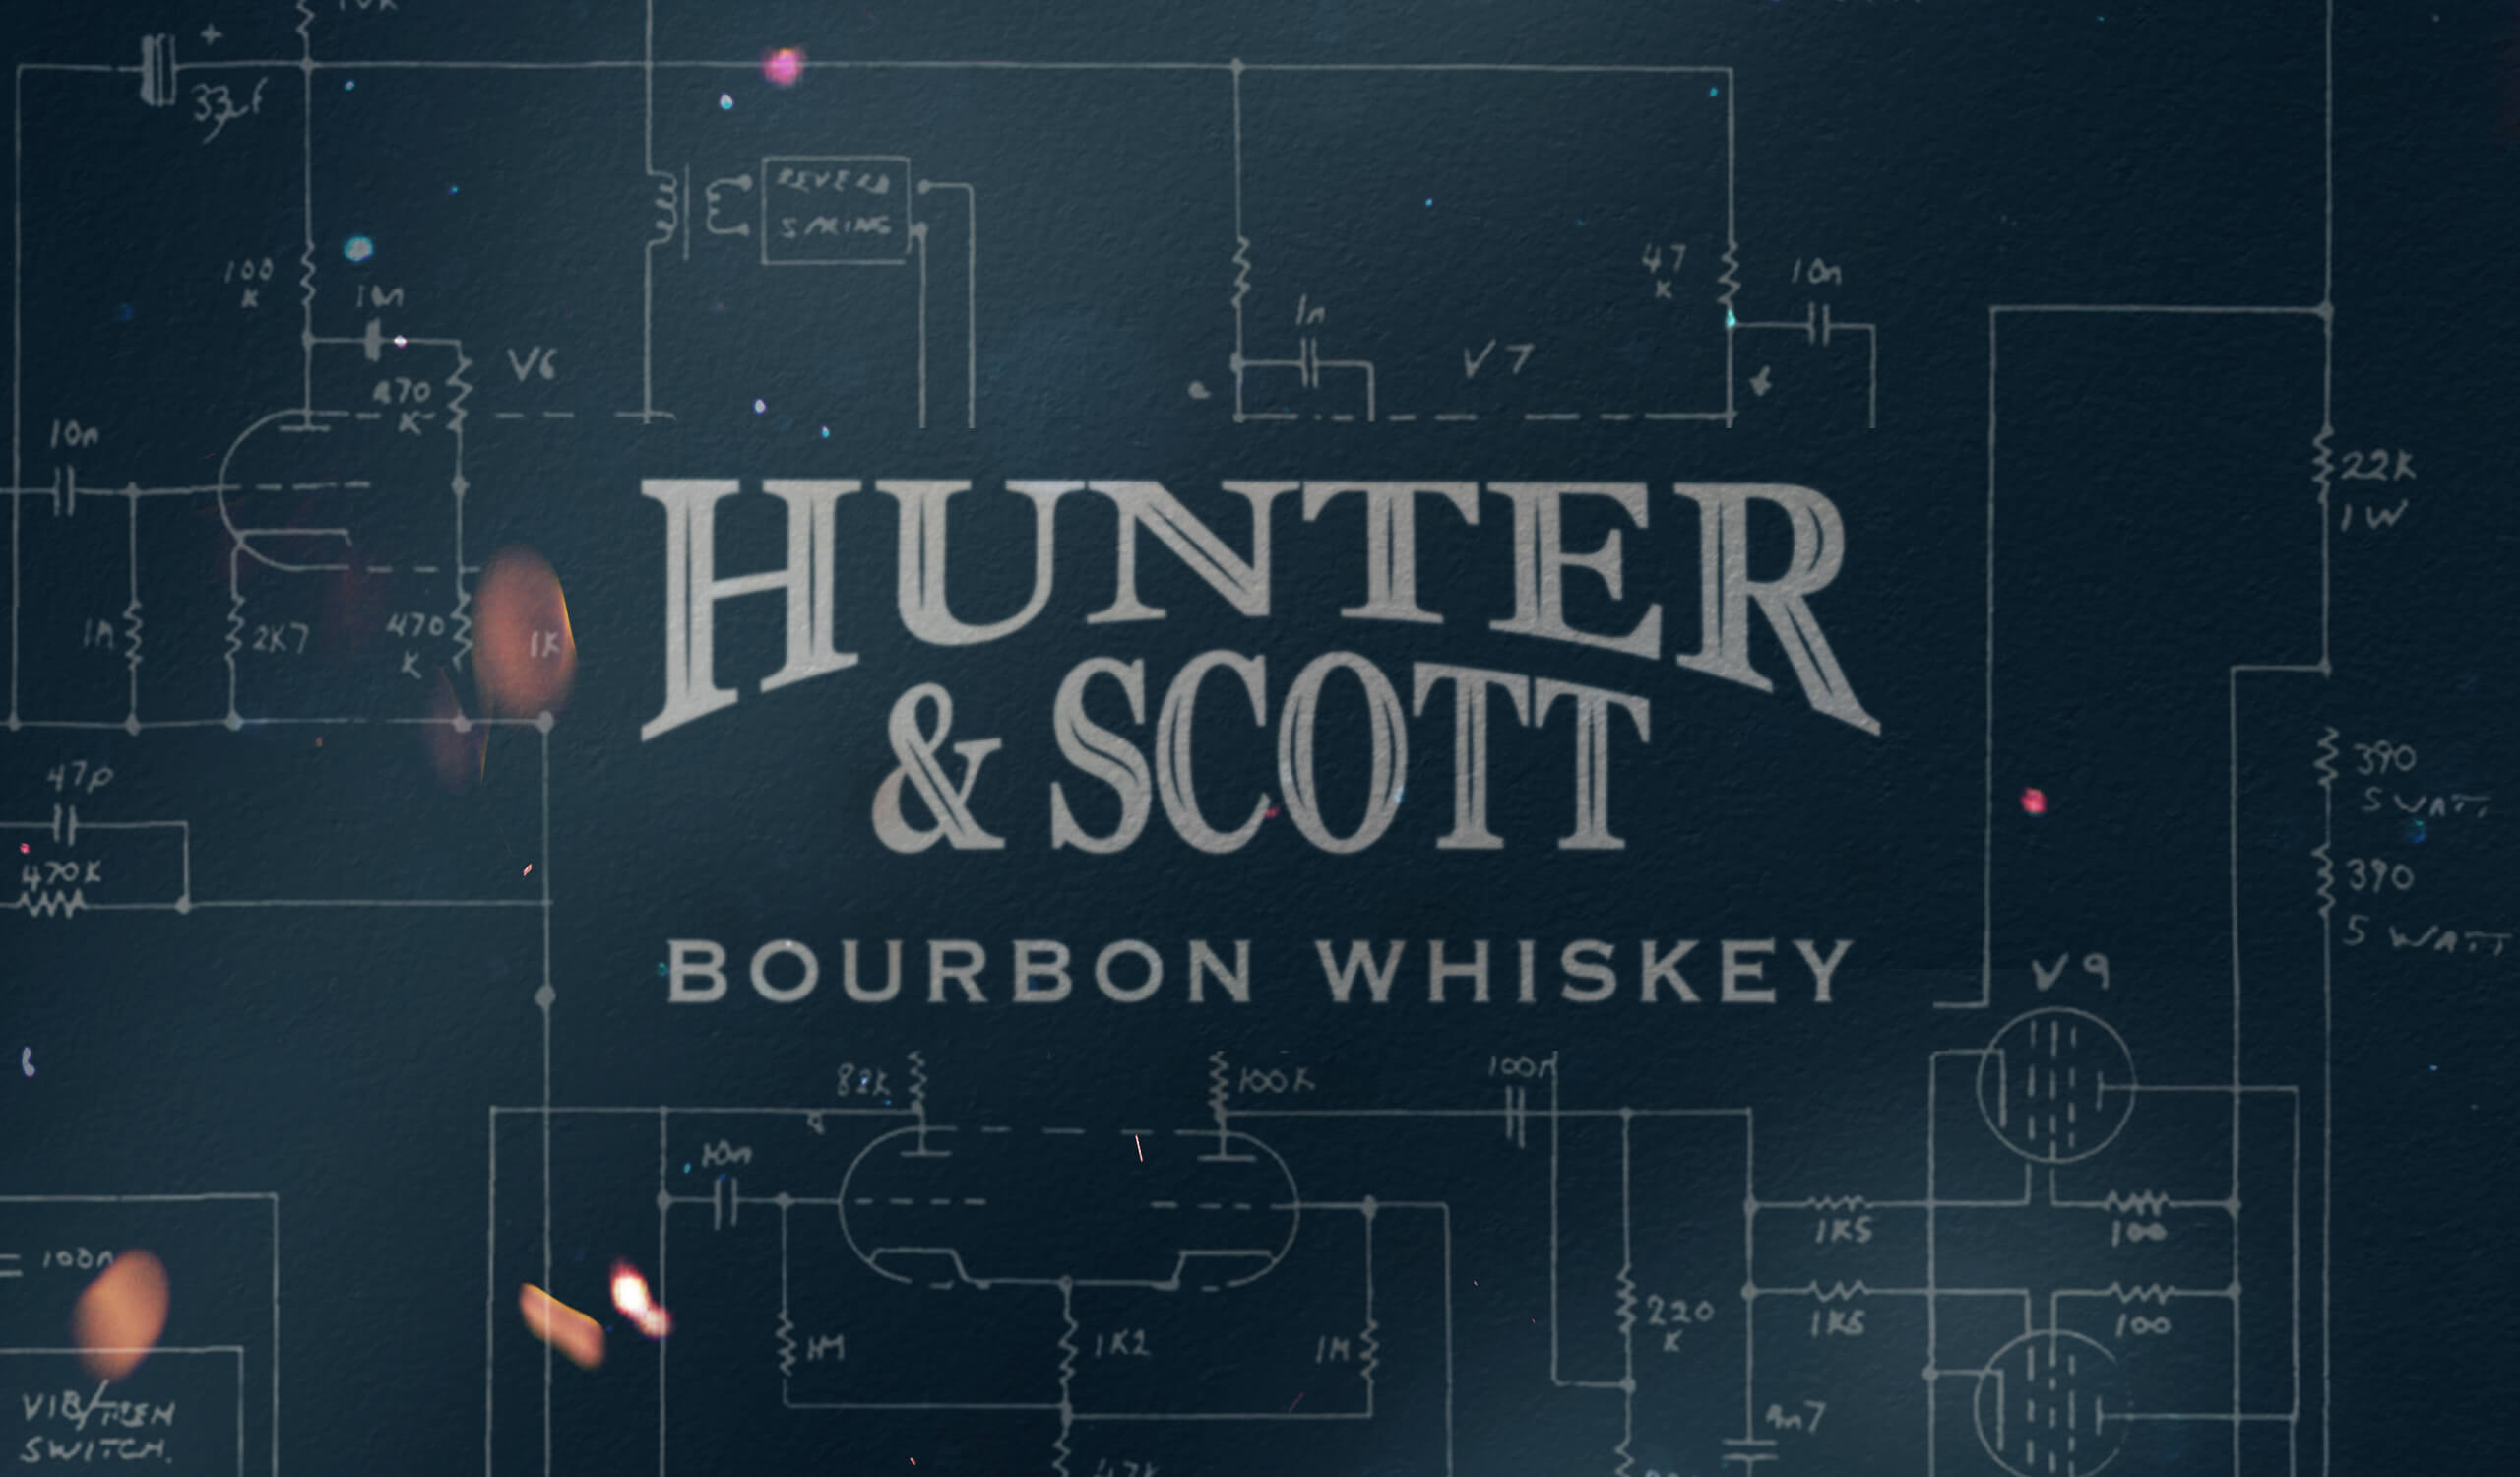 Huner-Scott-Website-layout_01